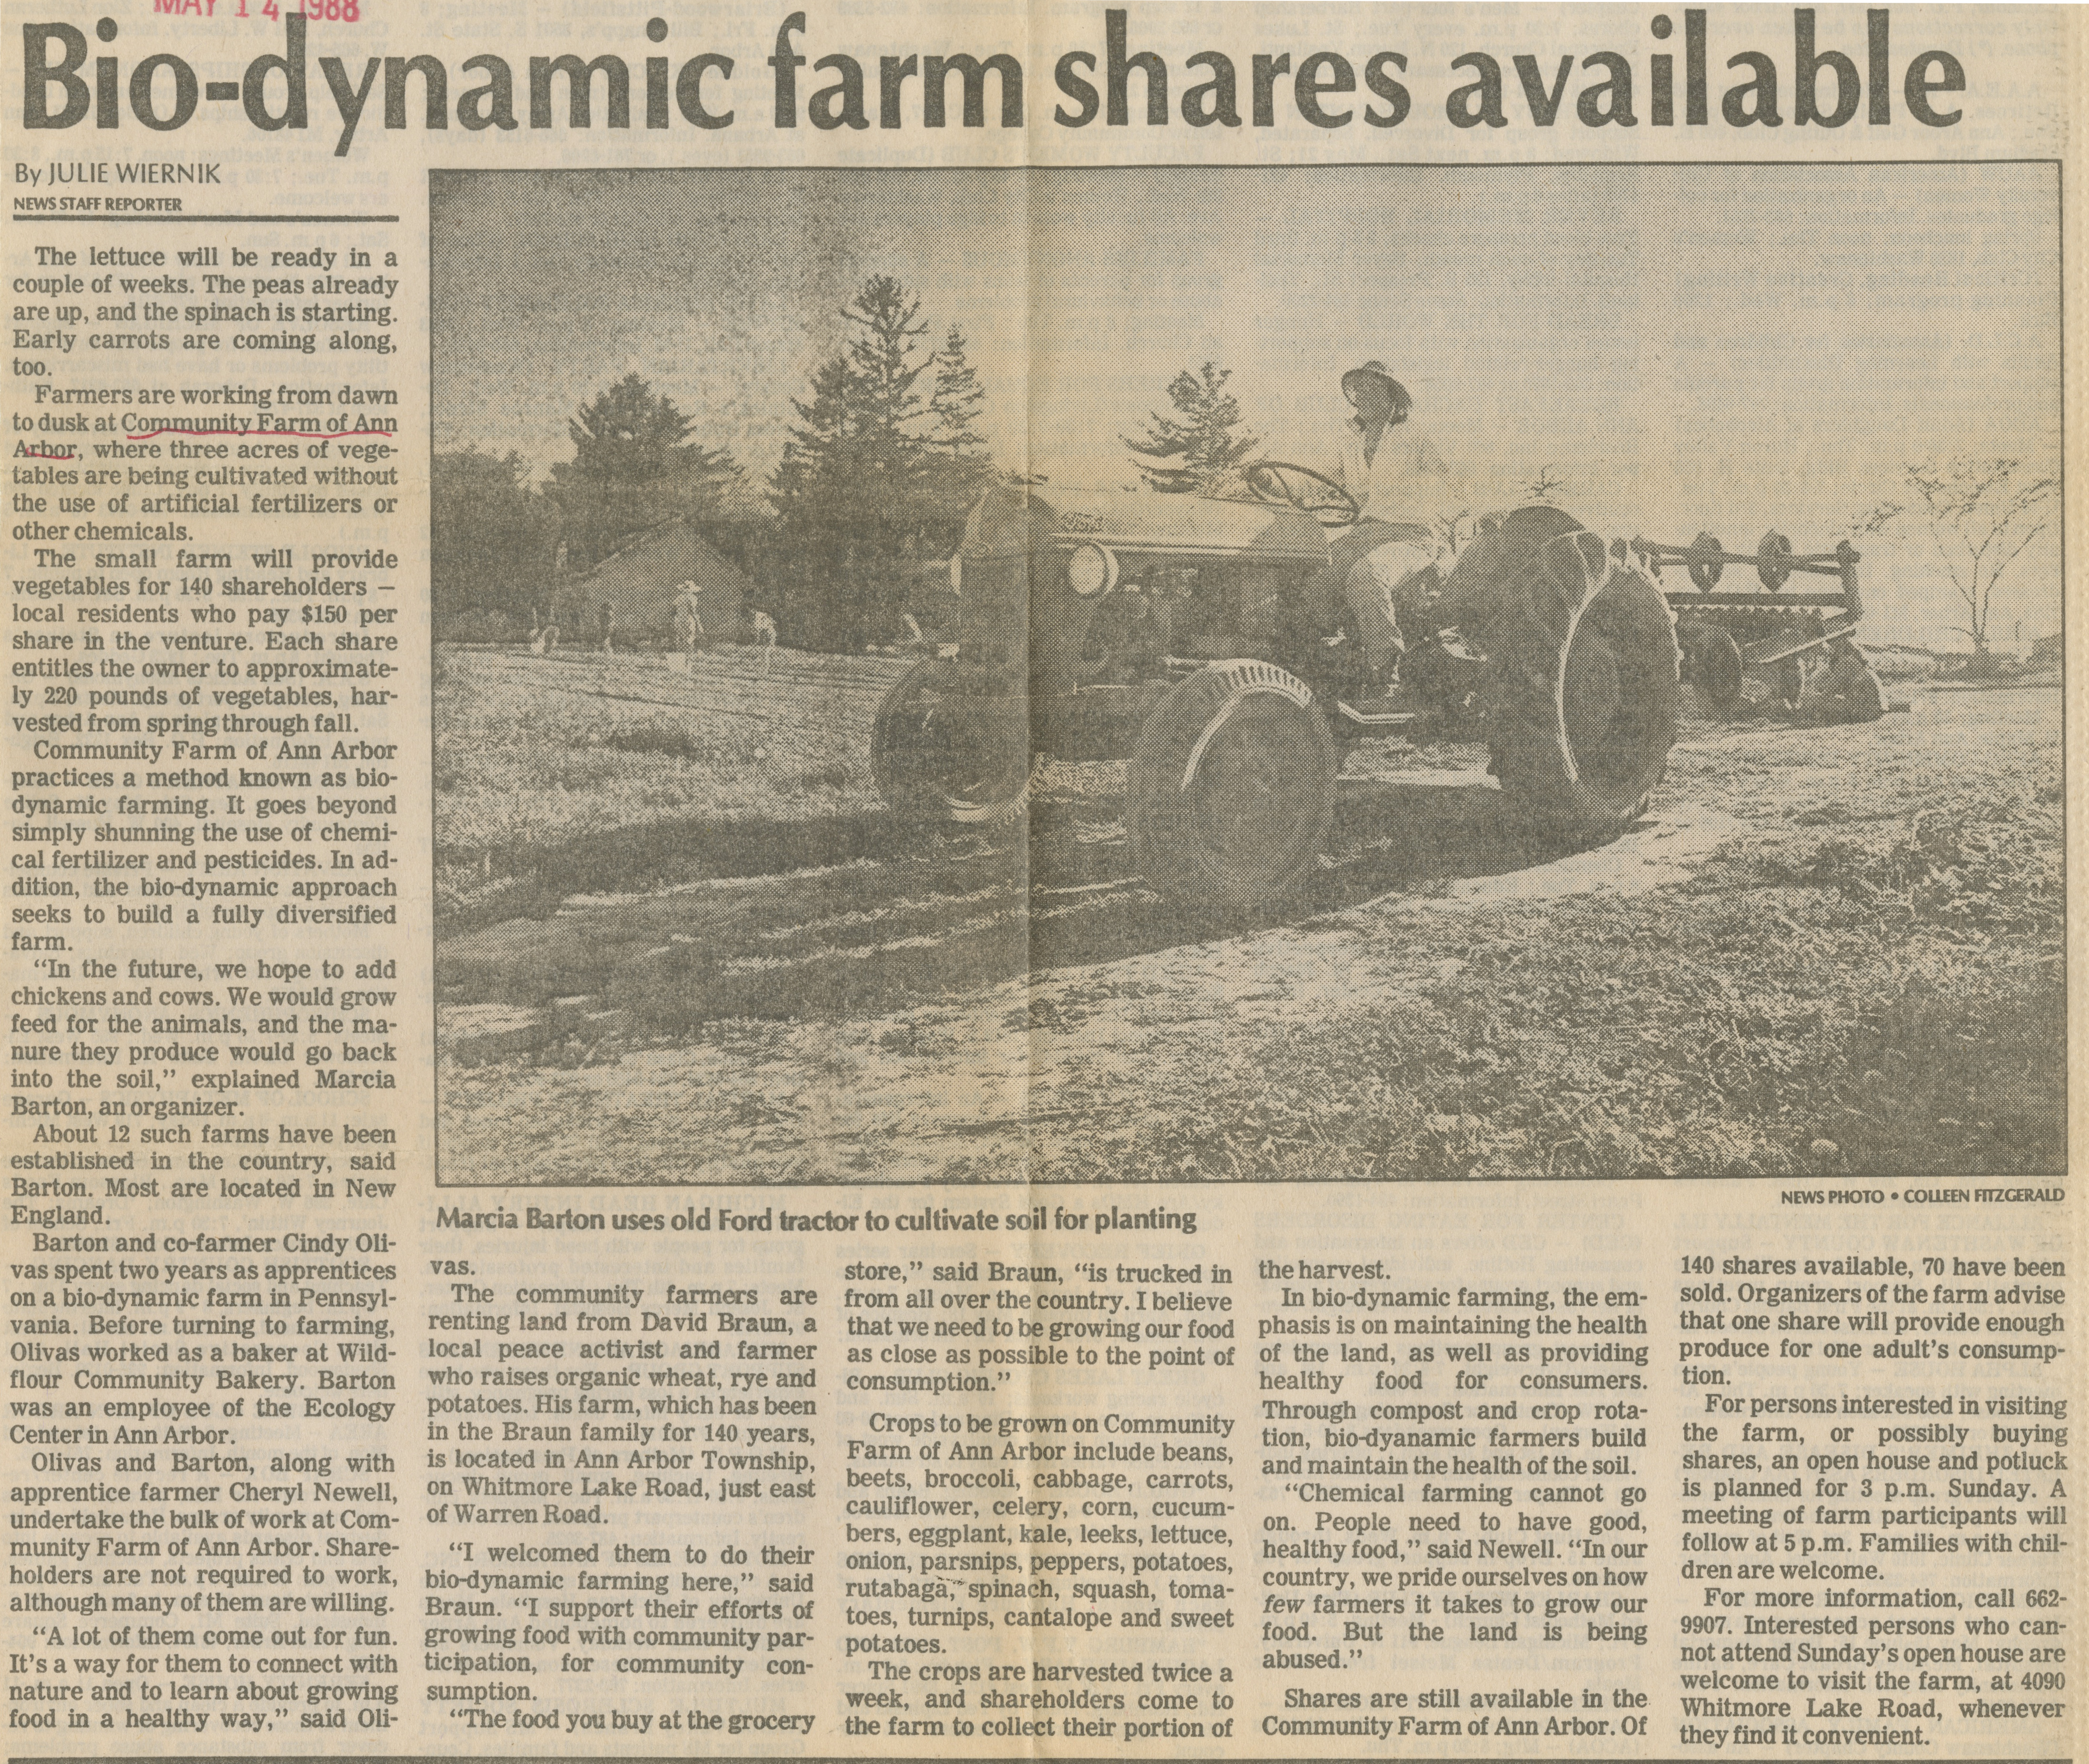 Bio-Dynamic Farm Shares Available image